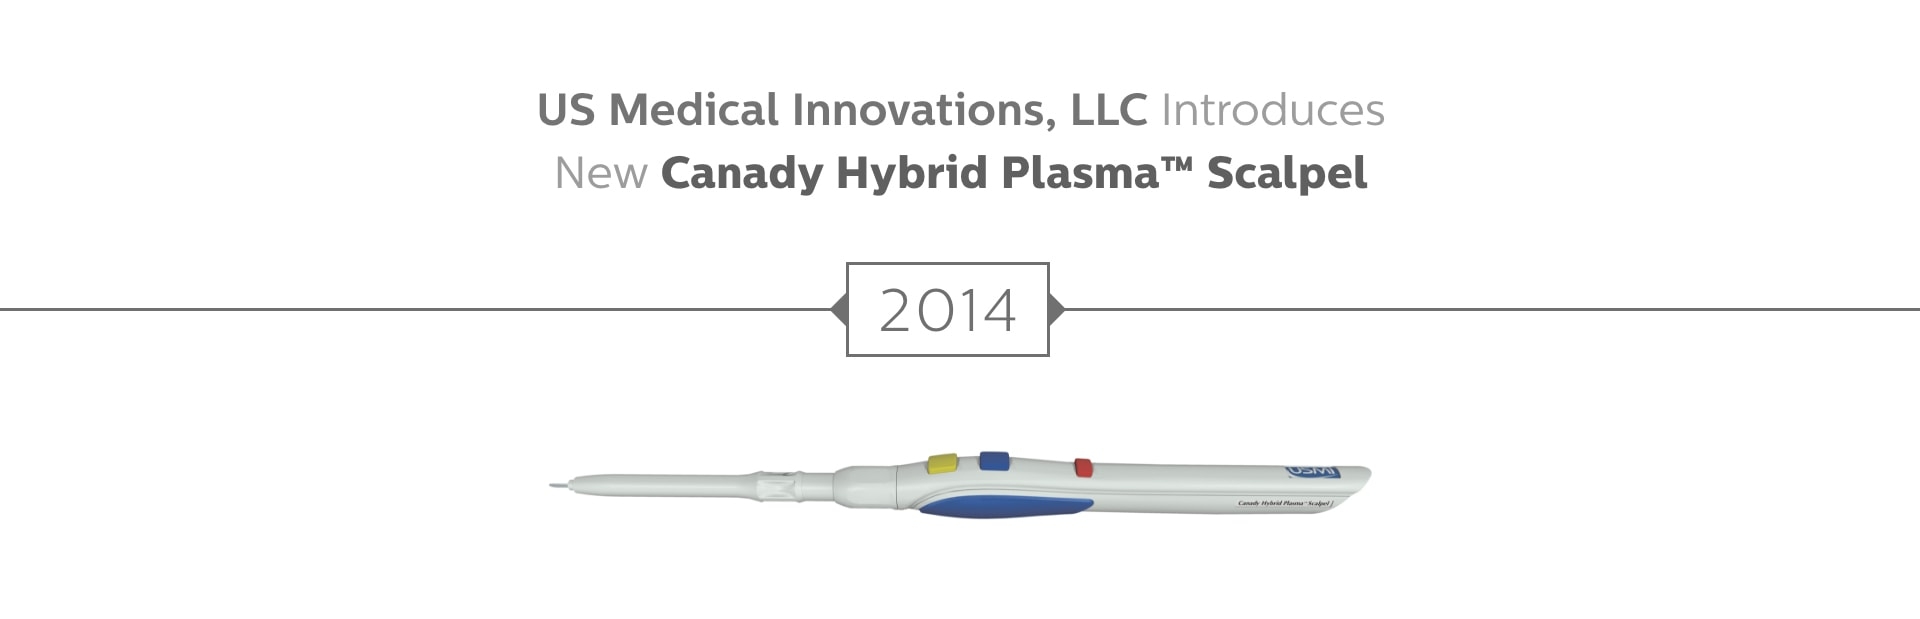 US Medical Innovations introduces the Canady Hybrid Plasma Scalpel.